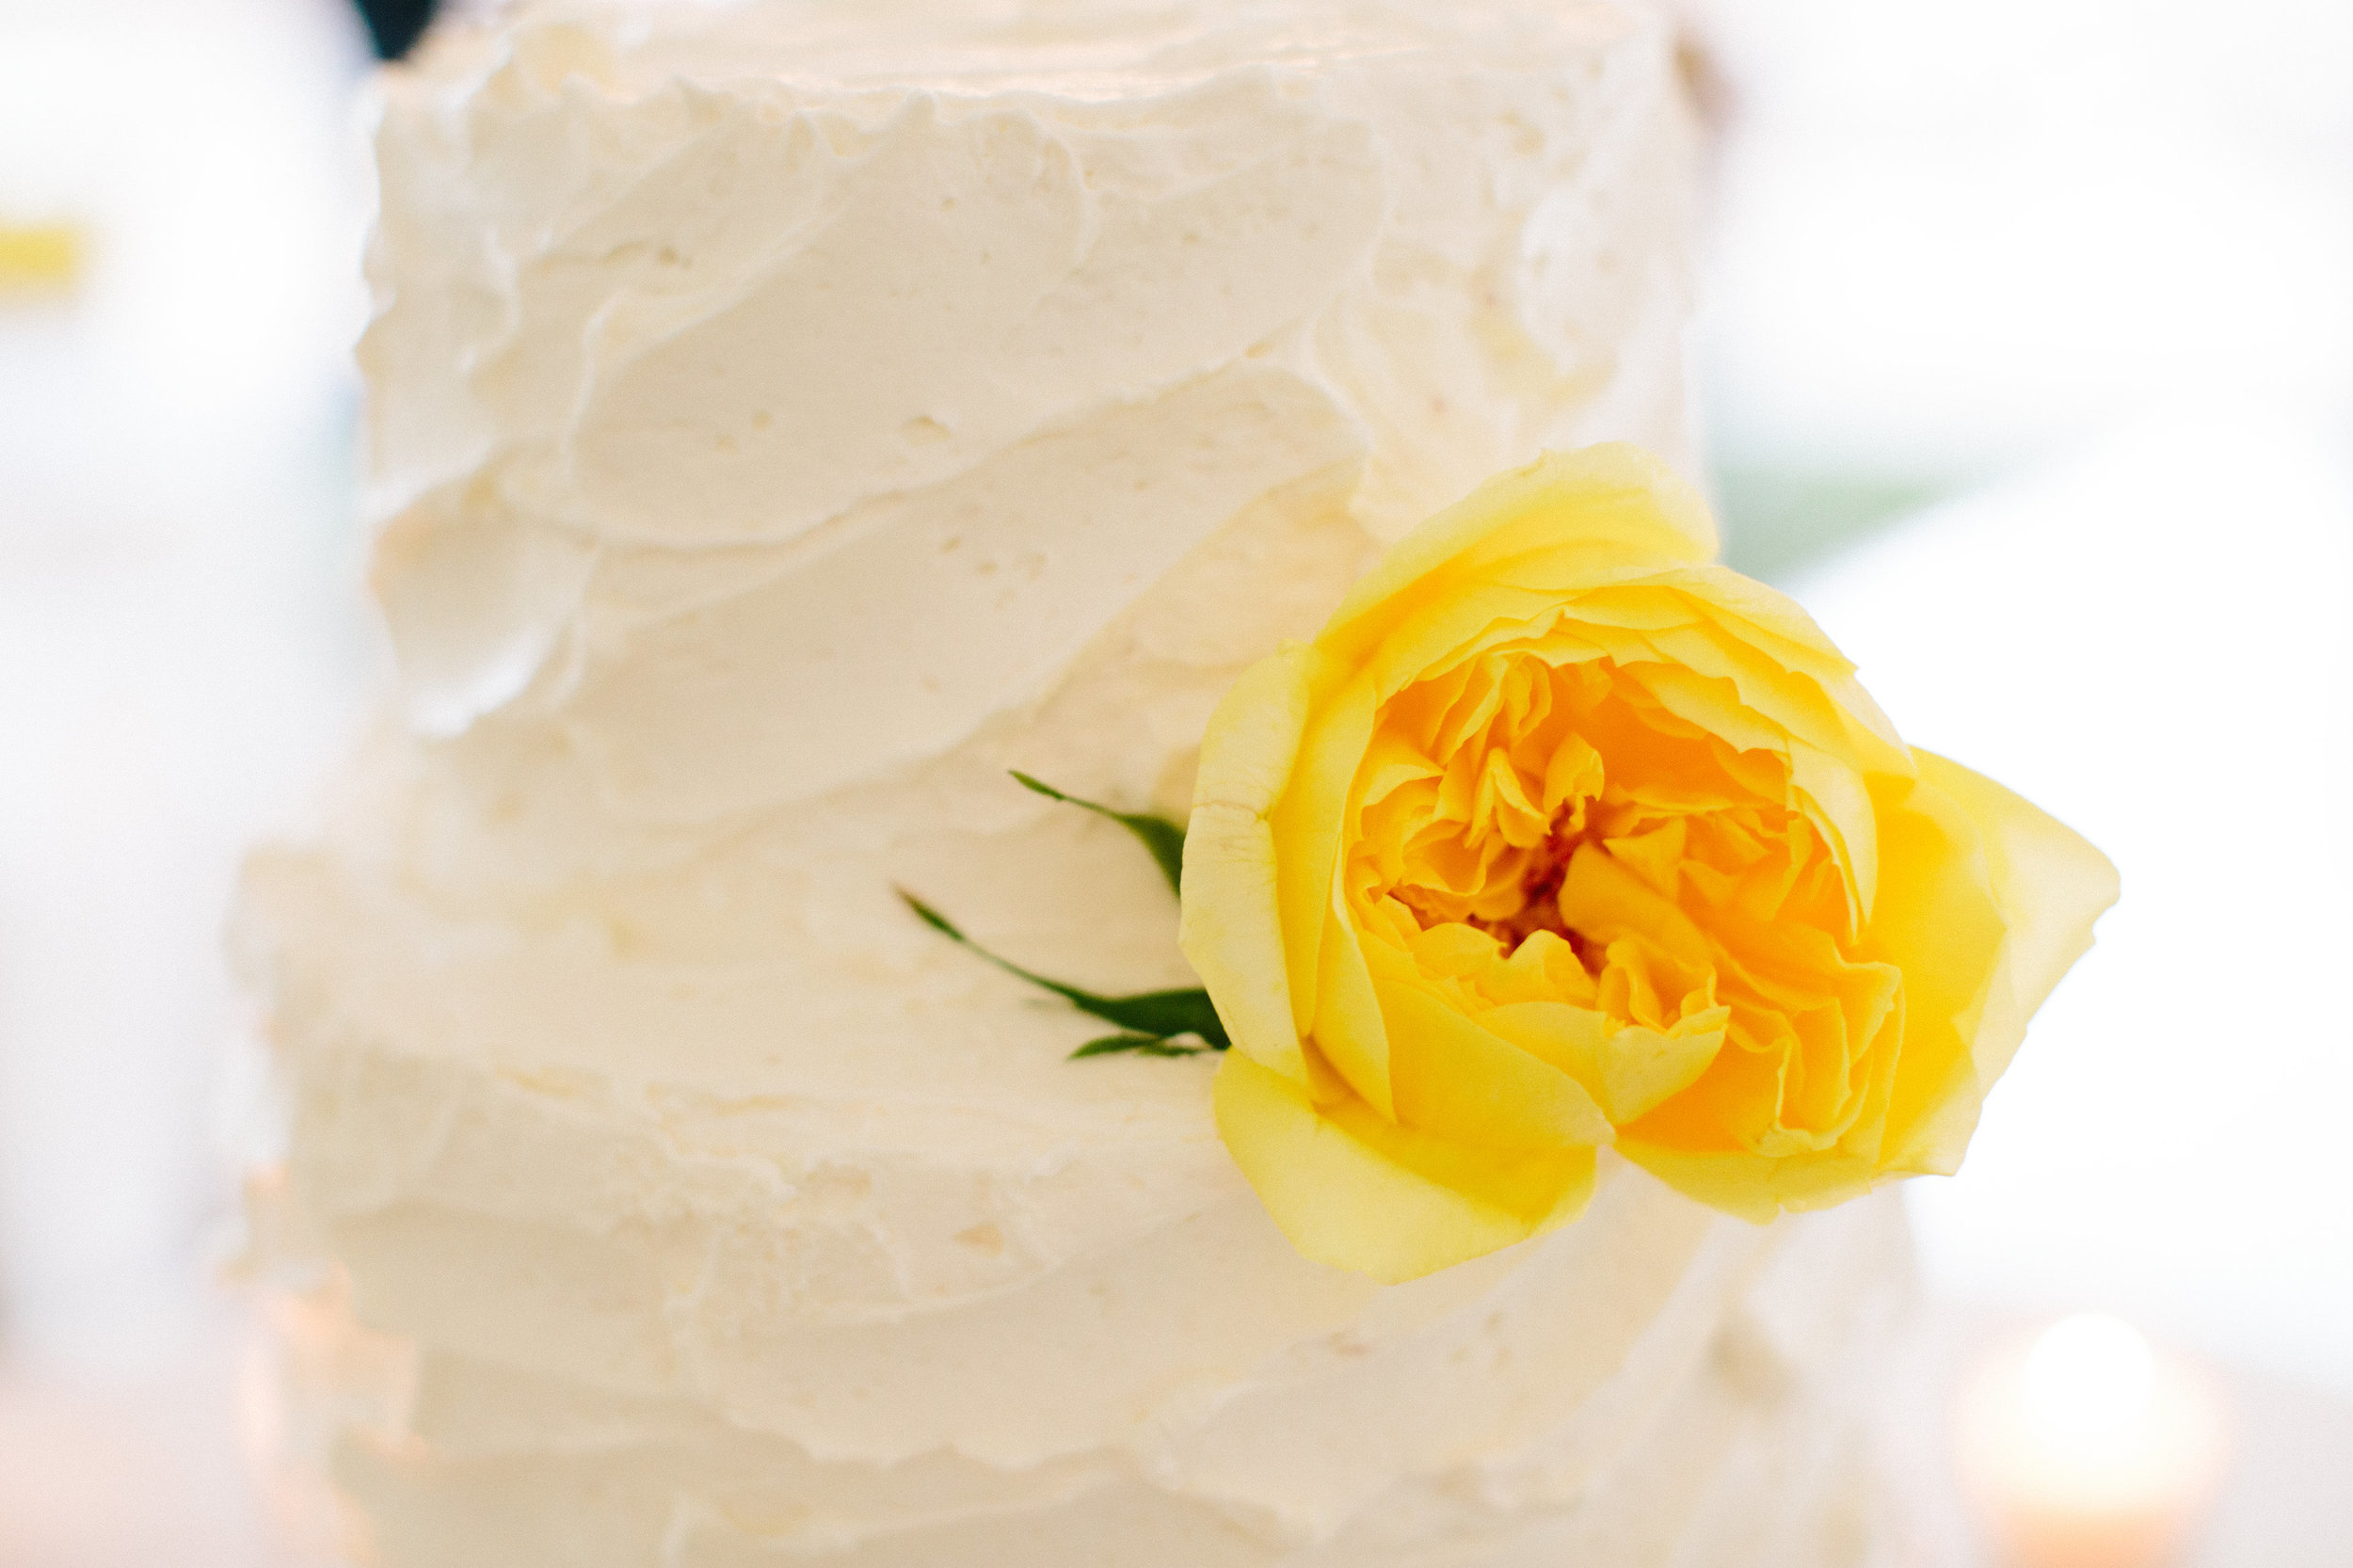 A single yellow garden rose on the cake